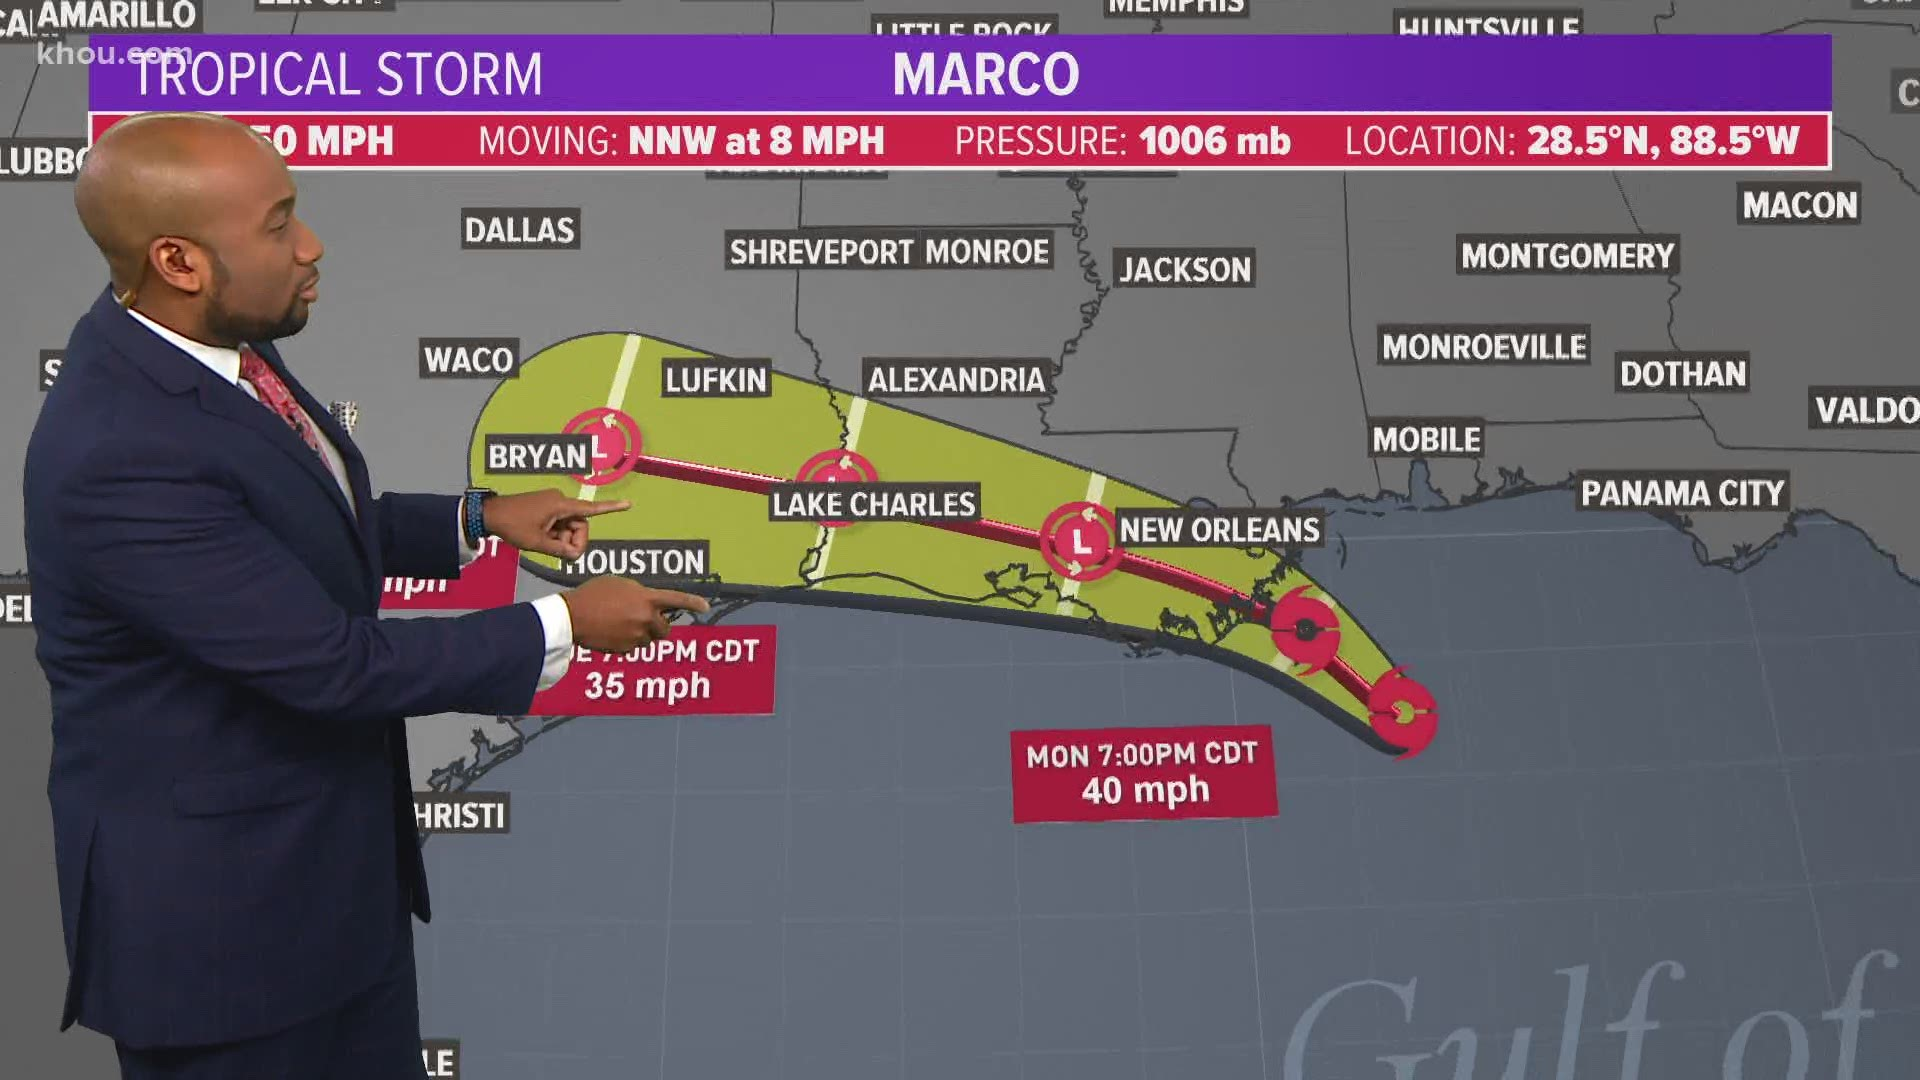 Texas Weather Tropical Storms Marco Storm Laura Paths Models Newscentermaine Com